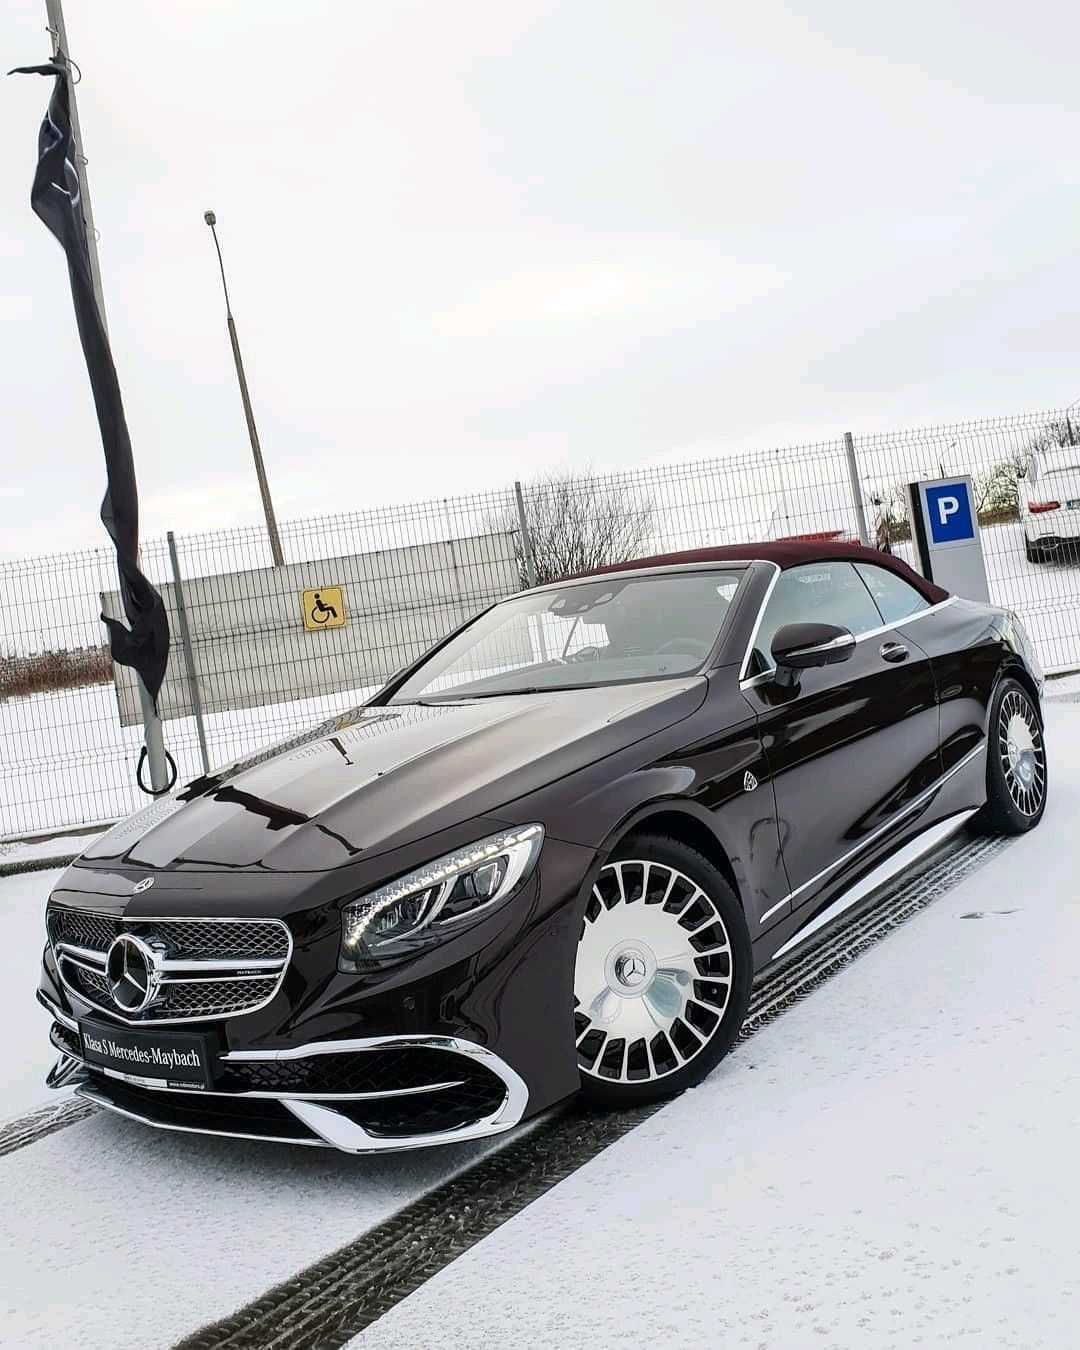 Mercedes Maybach S650 Cabriolet Via Reddit With Images Maybach